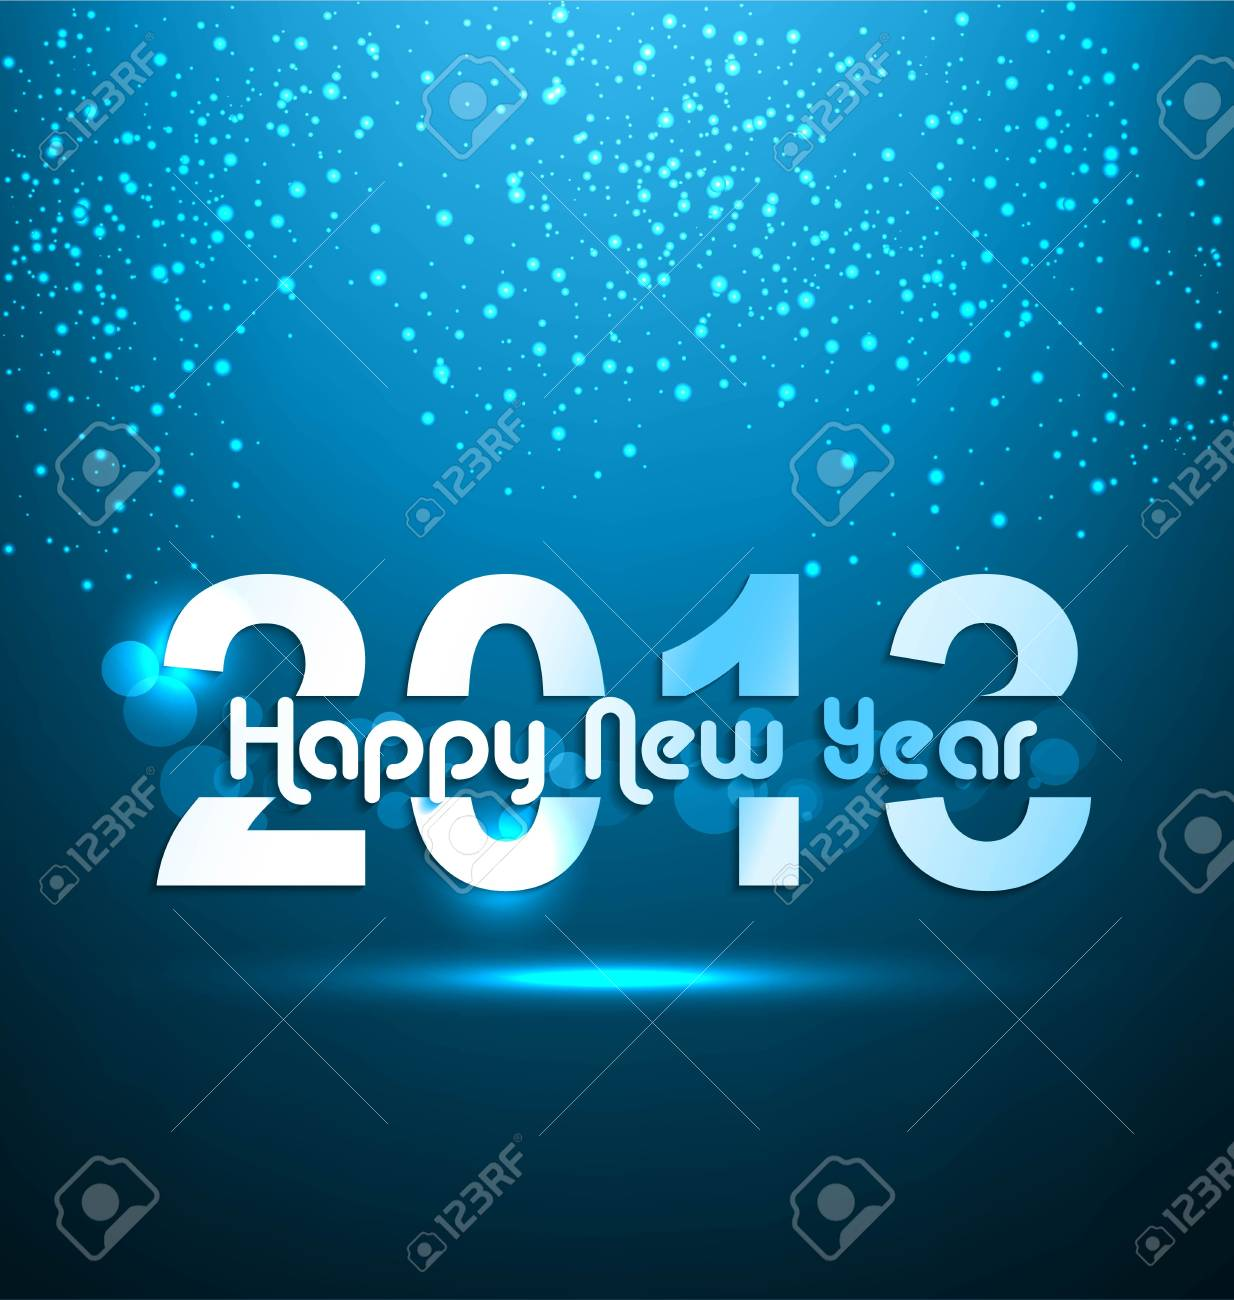 Happy new year shiny 2013 blue colorful background Stock Vector - 17790303